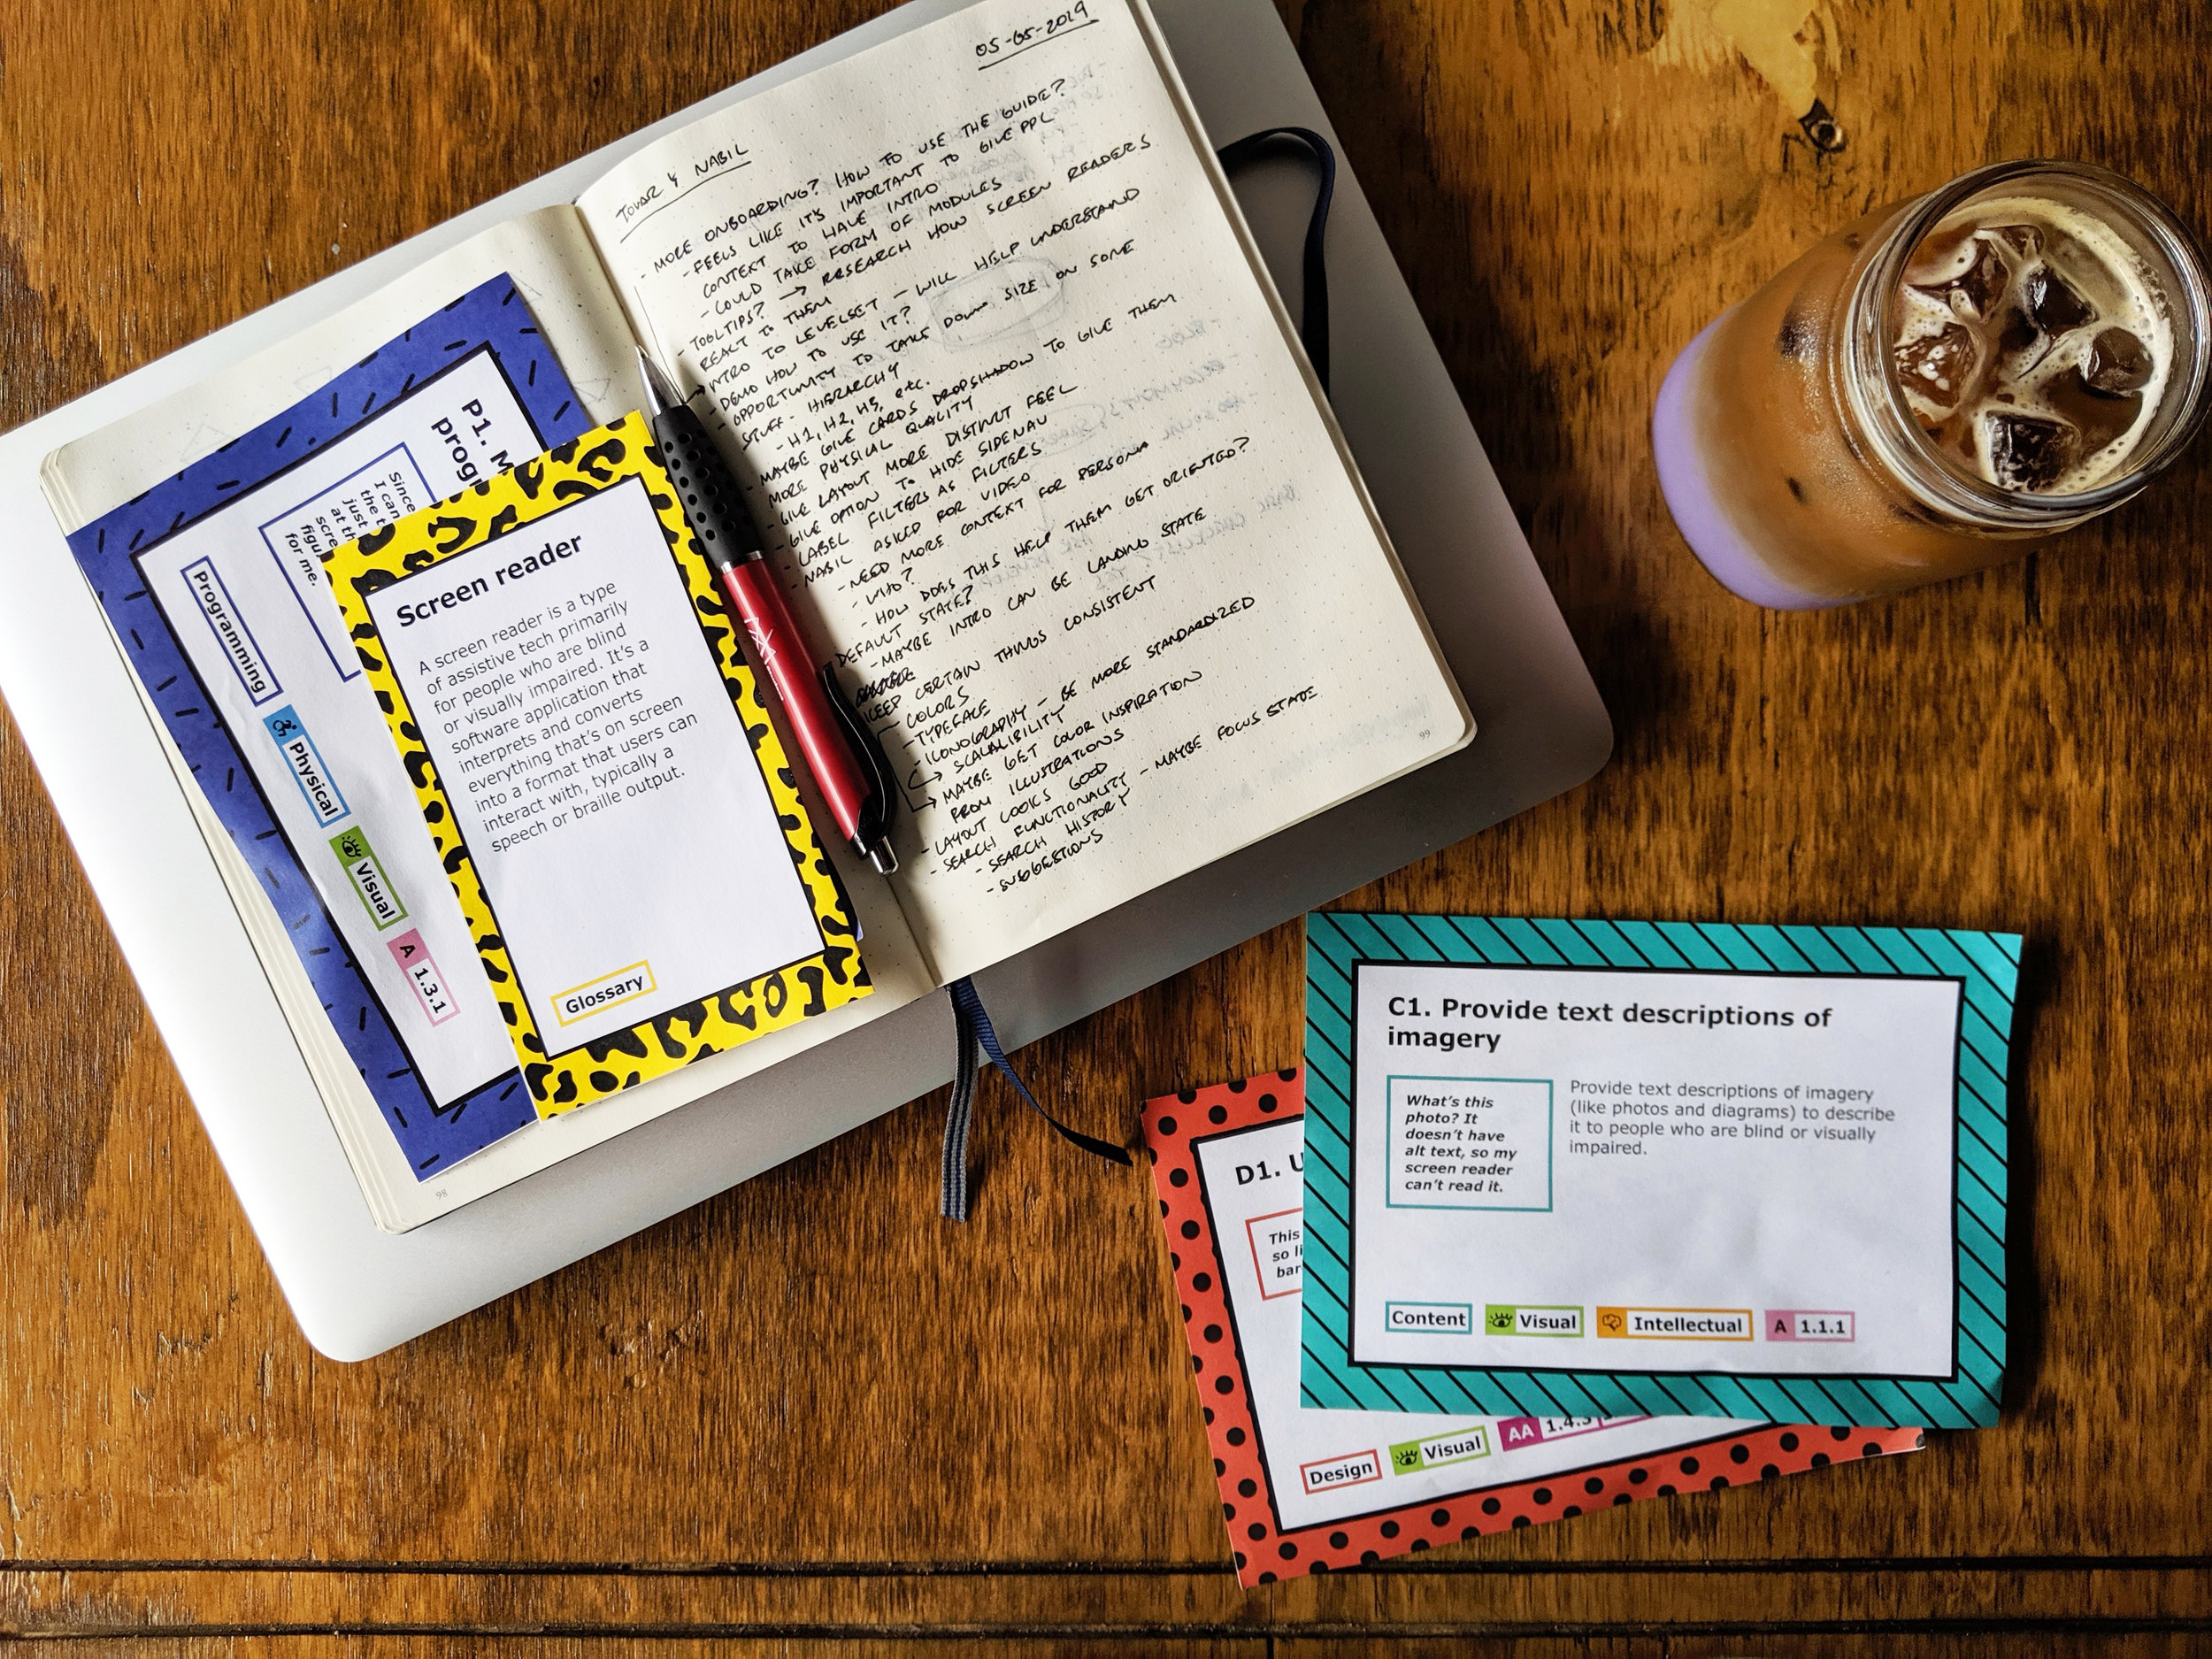 Image description: photo from above of colorful yellow, purple, turquoise, and red-orange cards, my open sketchbook with handwritten notes, my closed laptop, and an ube latte drink all on a hardwood desk surface. Photo taken at First Sip Cafe in Argyle.